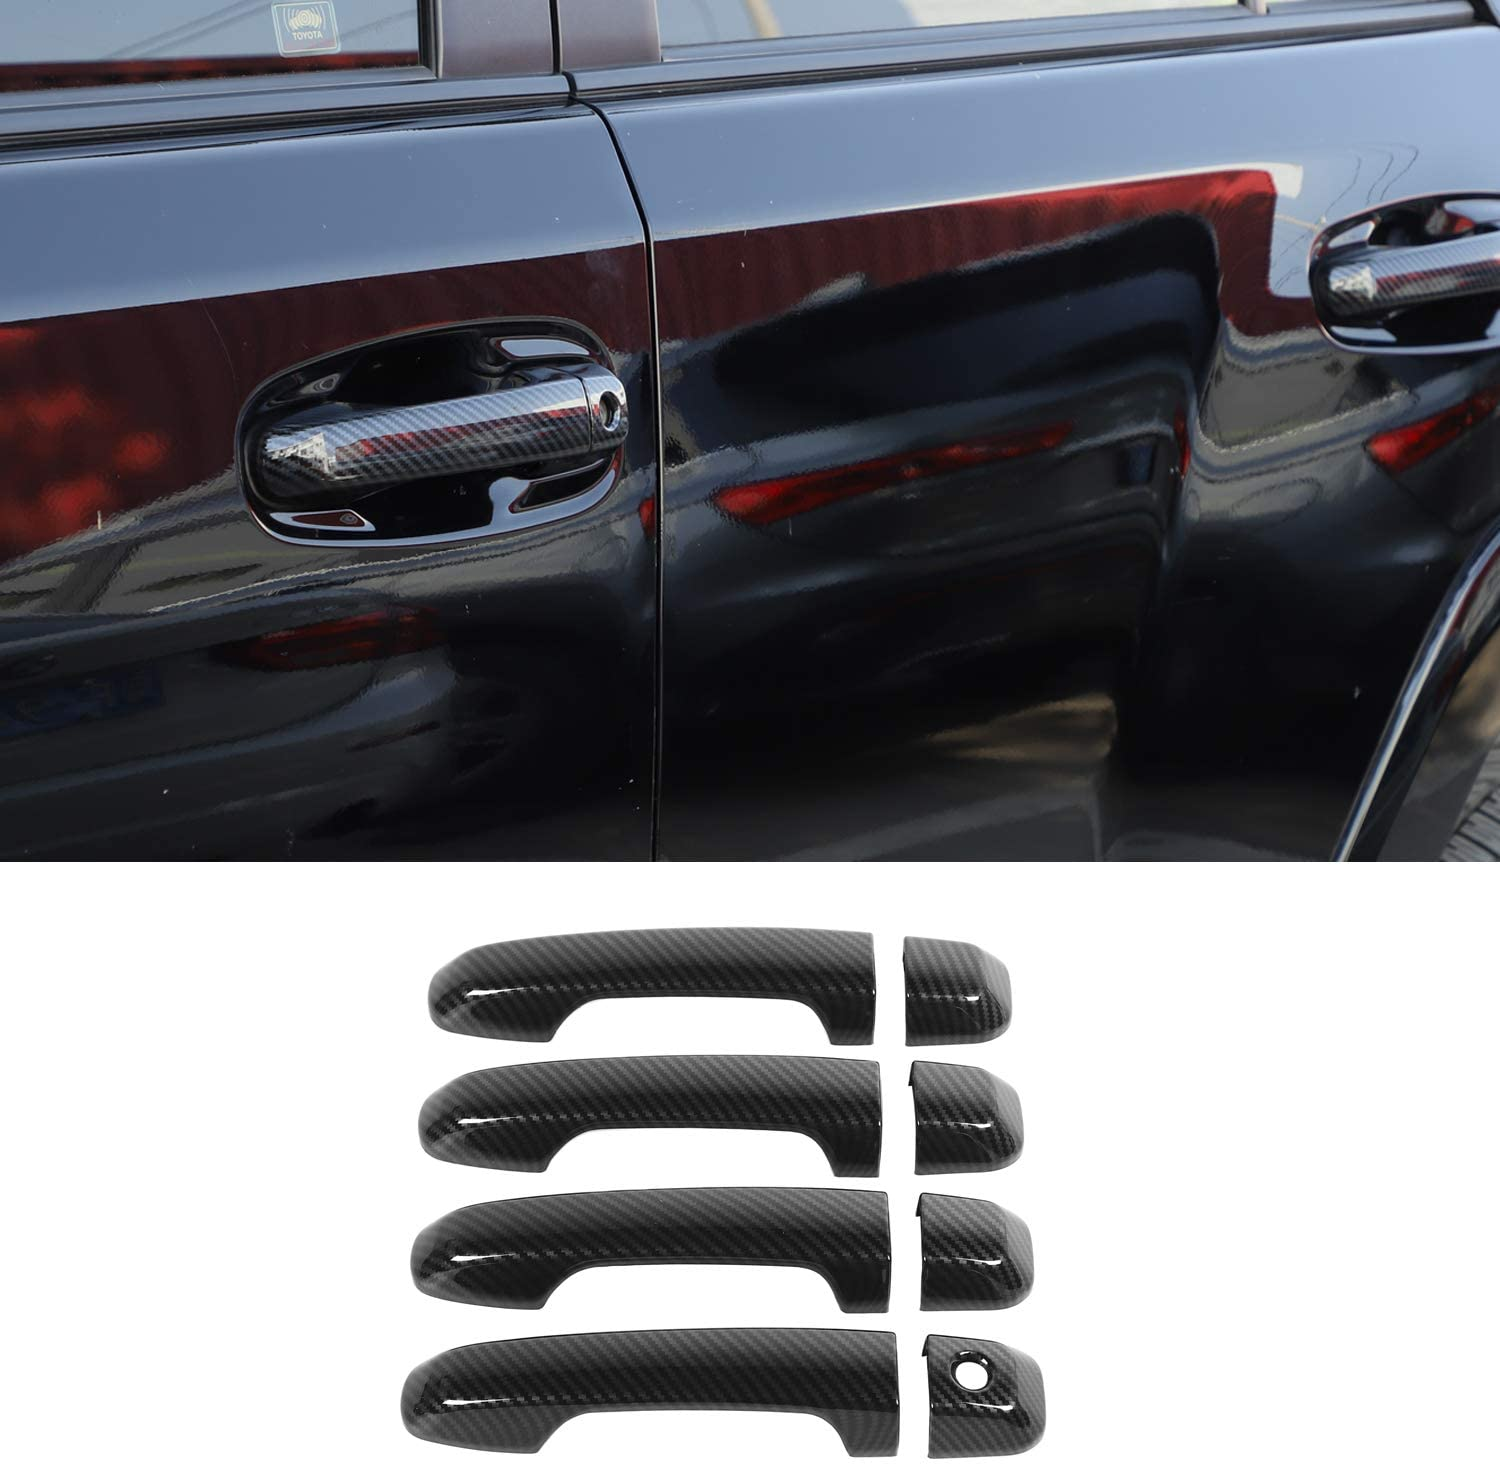 Dogggy 2pcs Auto Car Door Handle Covers Trim Decor Black Car Accessories Door Handle Cover Car Styling